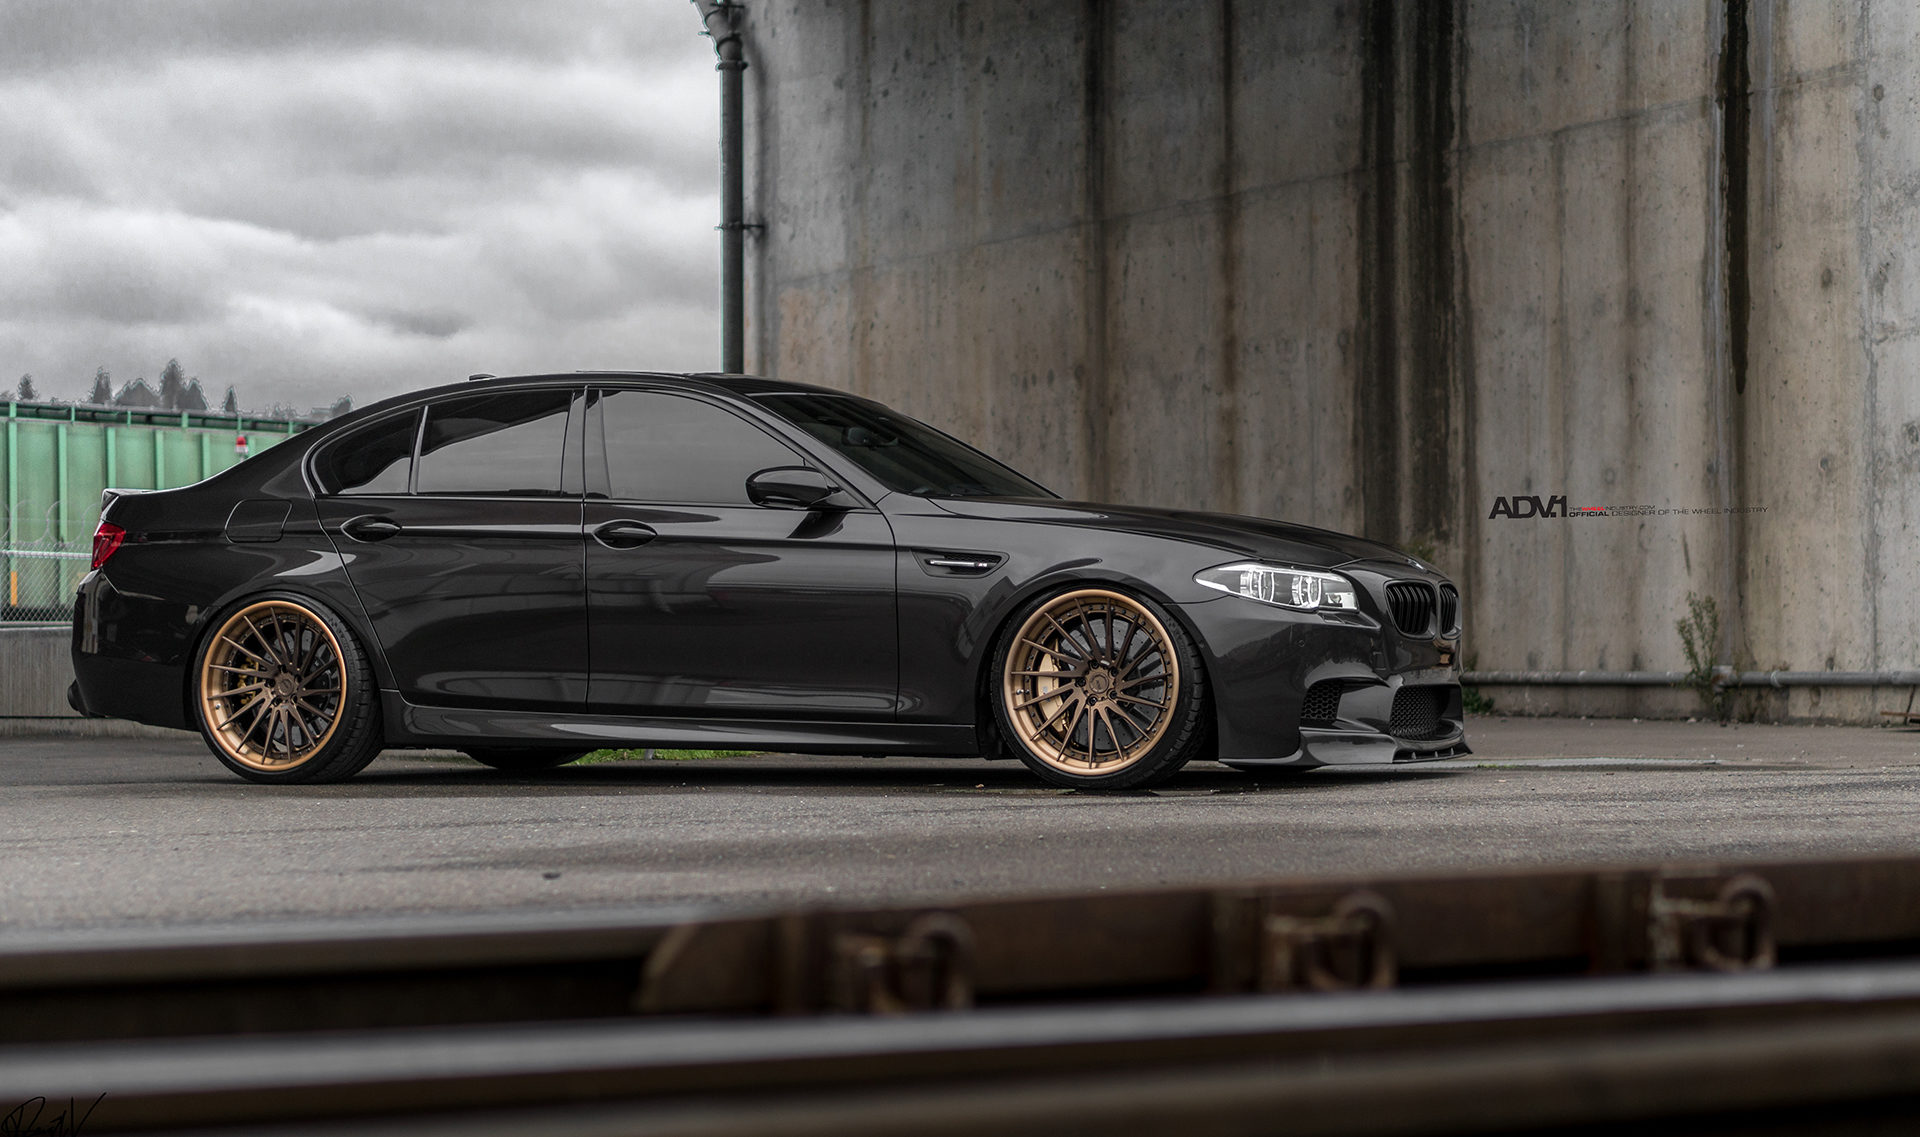 A Bmw F10 M5 Gets Some Directional Forged Goodies Adv 1 Wheels